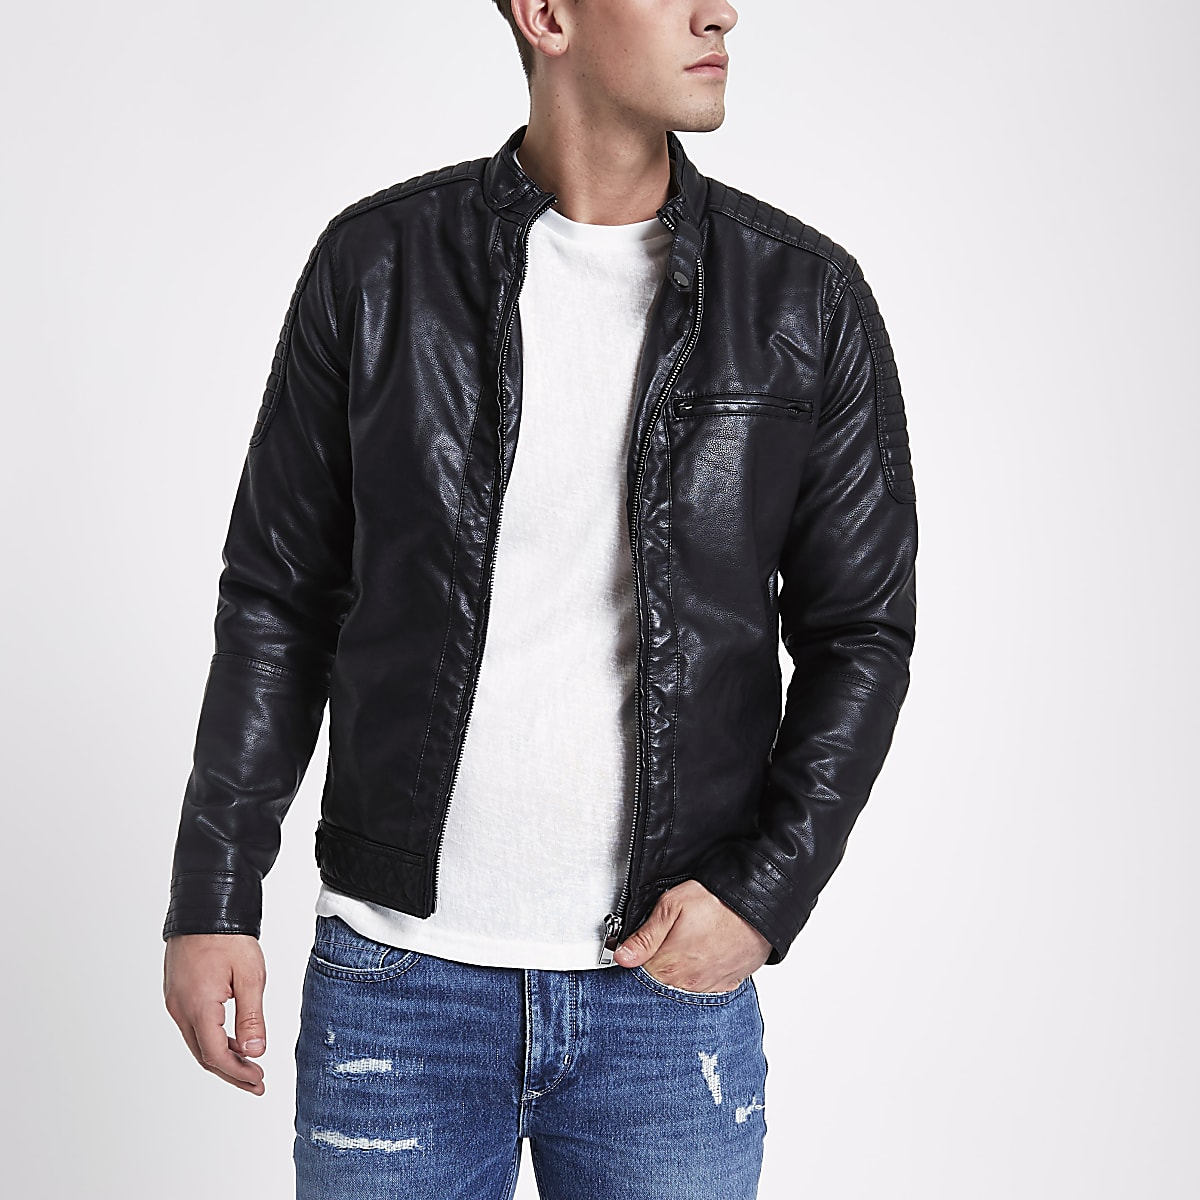 info for 83513 8be29 Black faux leather racer jacket